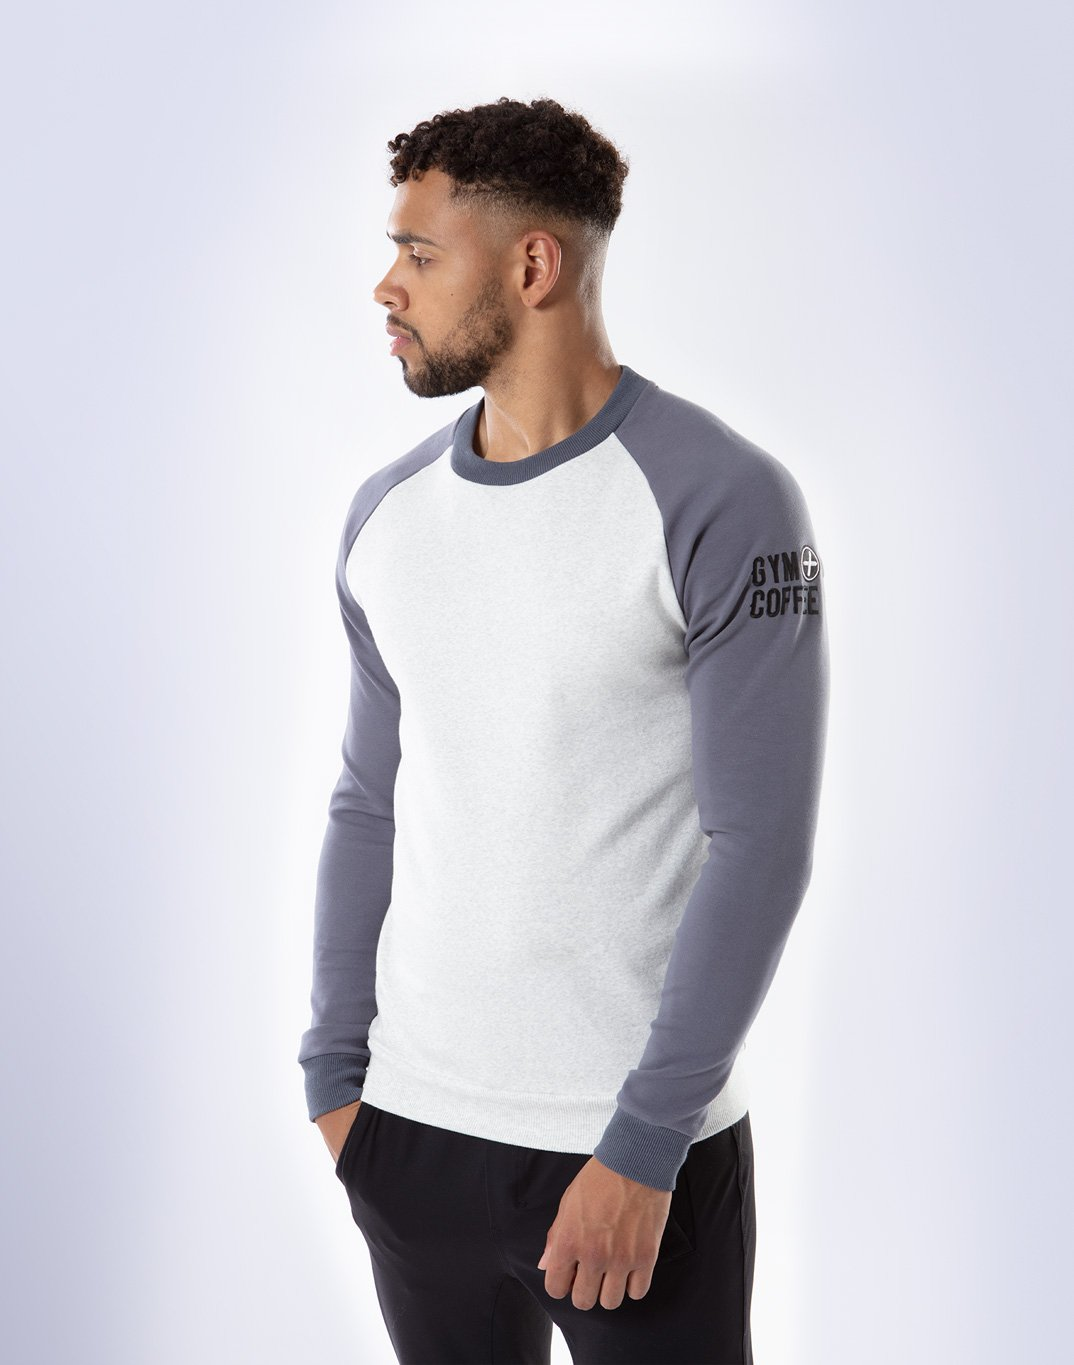 Gym Plus Coffee Long Sleeve Raglan 2Tone UniCrew in Cream/Stone Blue Designed in Ireland